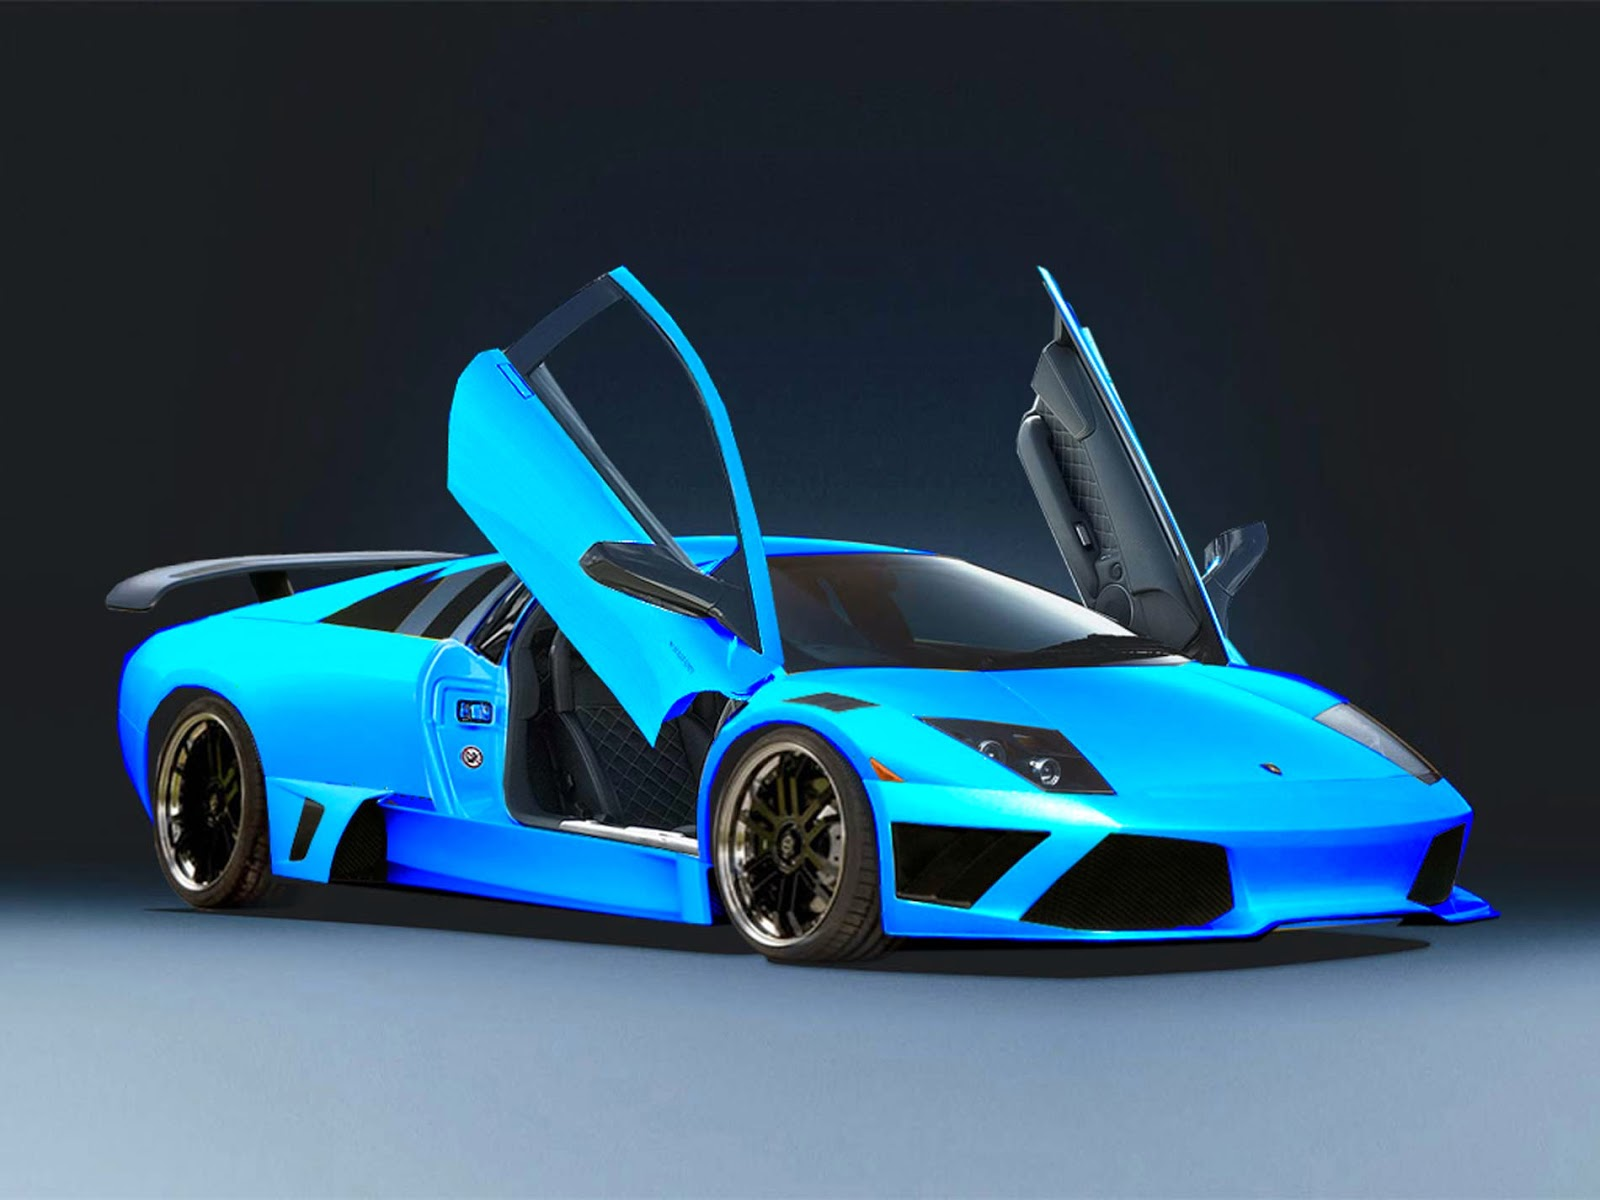 Lamborghini Egoista Blue - wallpaper.